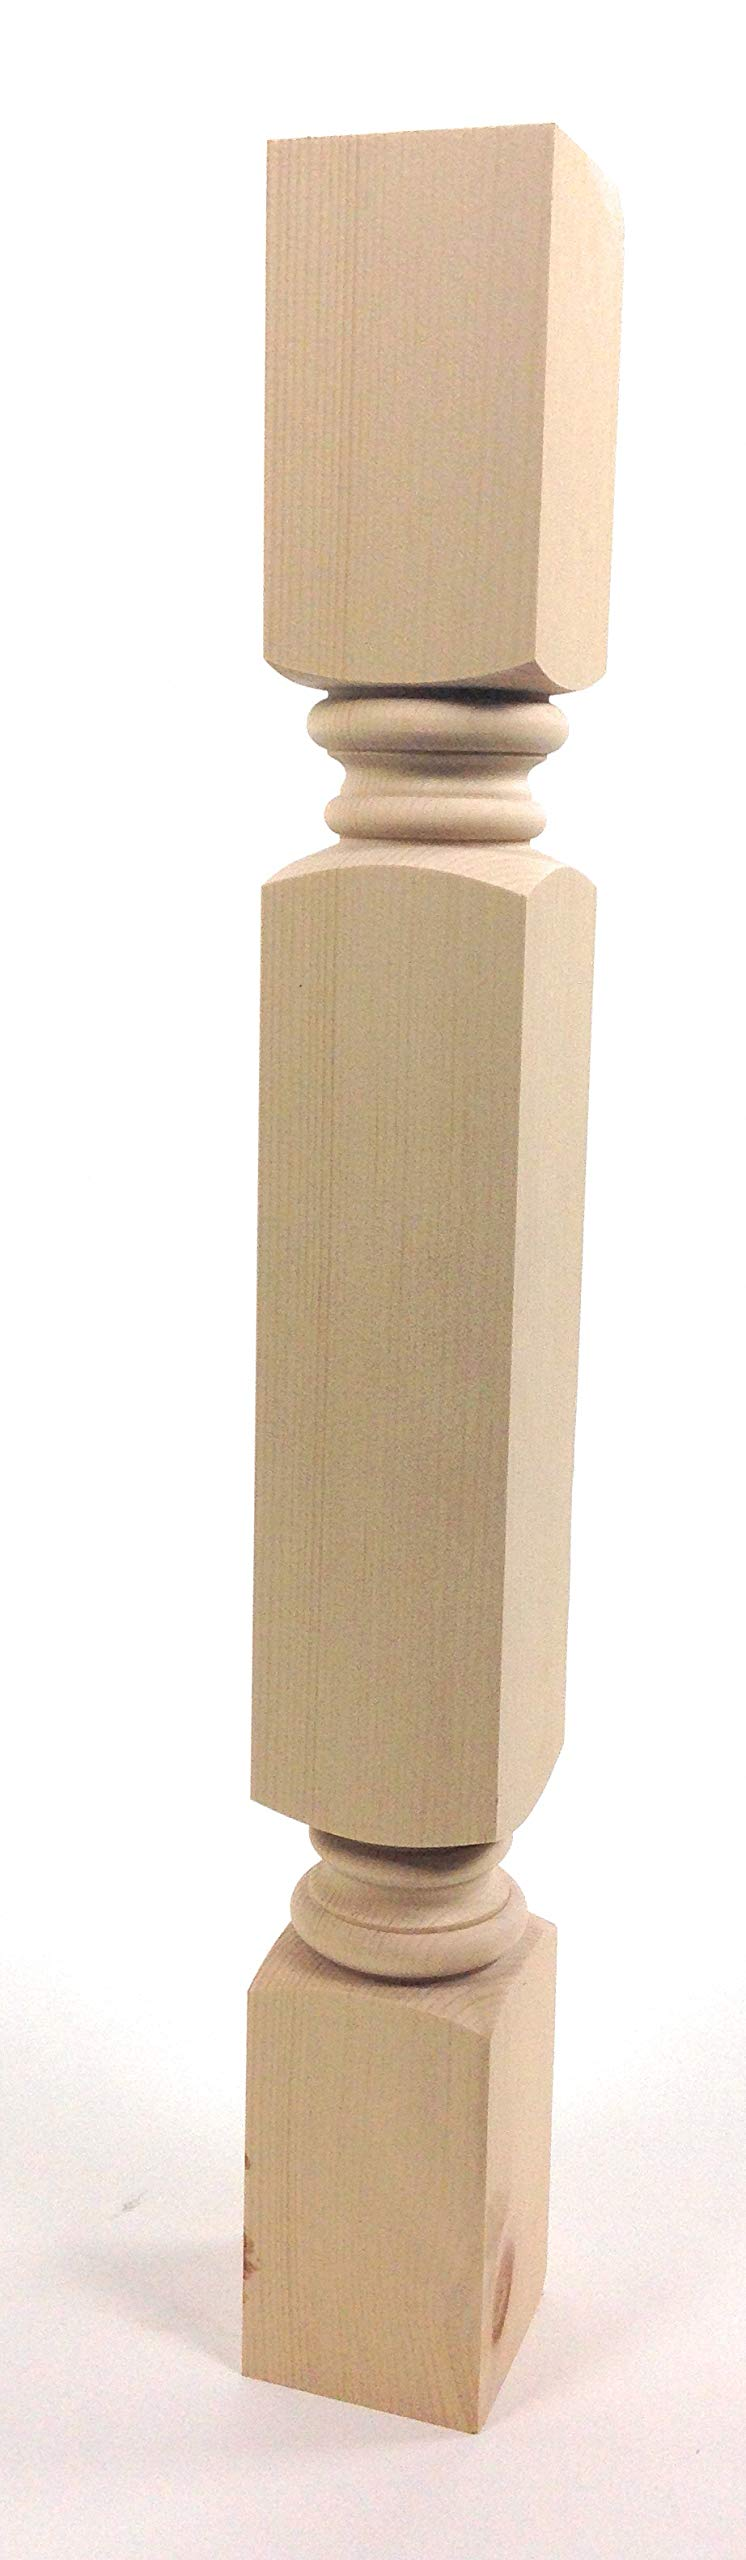 Meridian Dining Table Leg - 29'' Tall x 3 1/2'' Wide (Pine)